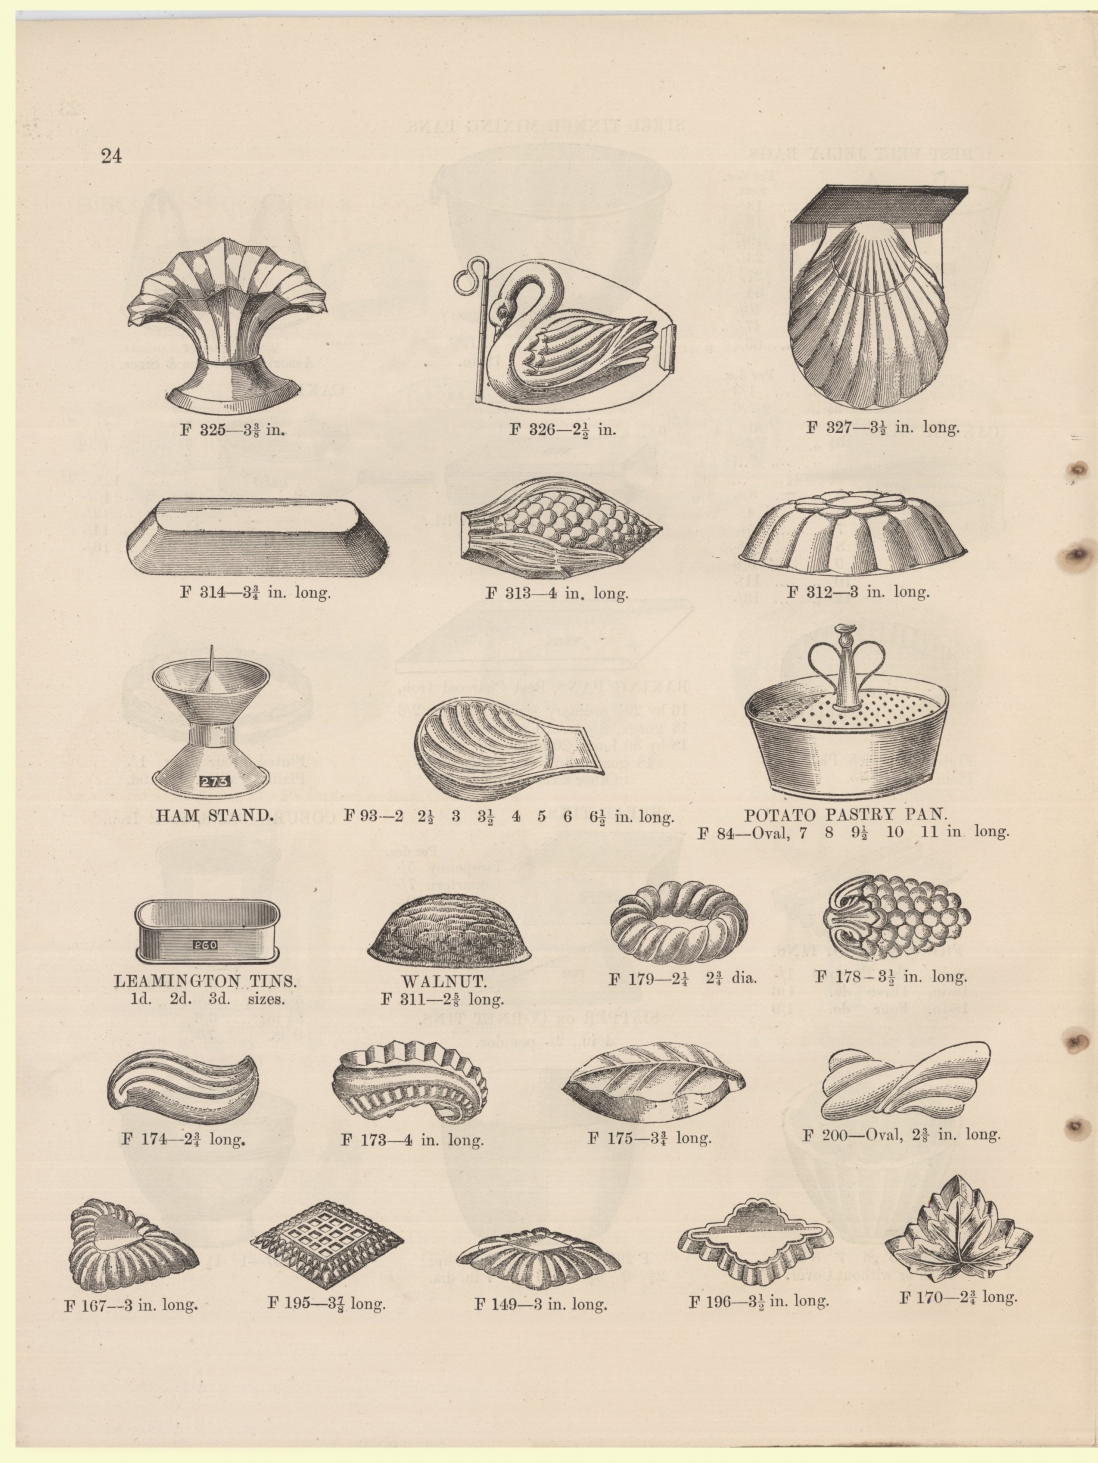 Page from book showing twenty-one different mould shapes.